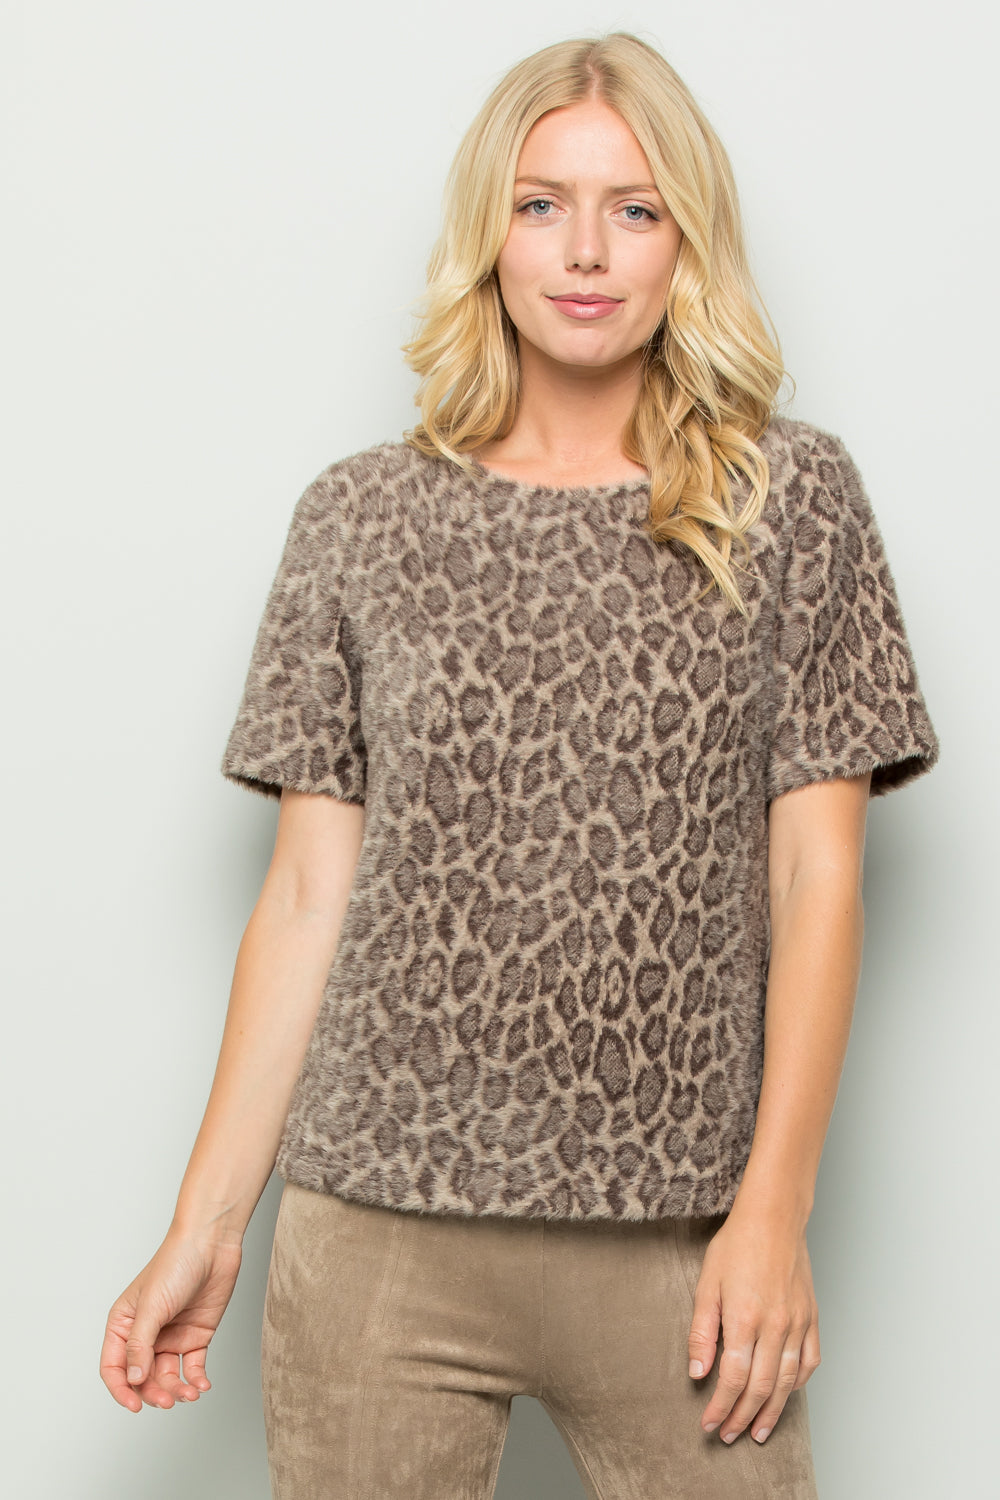 SW6073-1 Cheetah Print Sweater Top - OFF WHITE